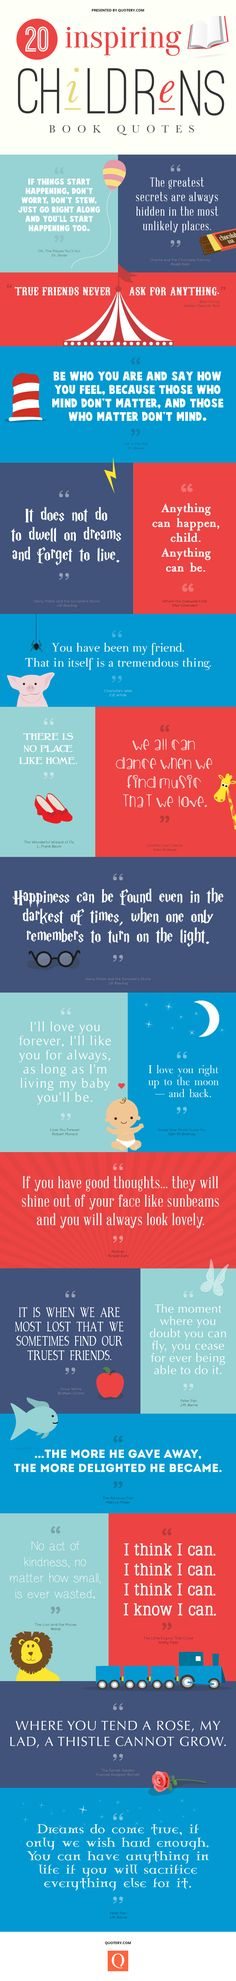 20 Inspiring Children Book Quotes - The Expecting Mamas NetworkThe Expecting Mamas Network